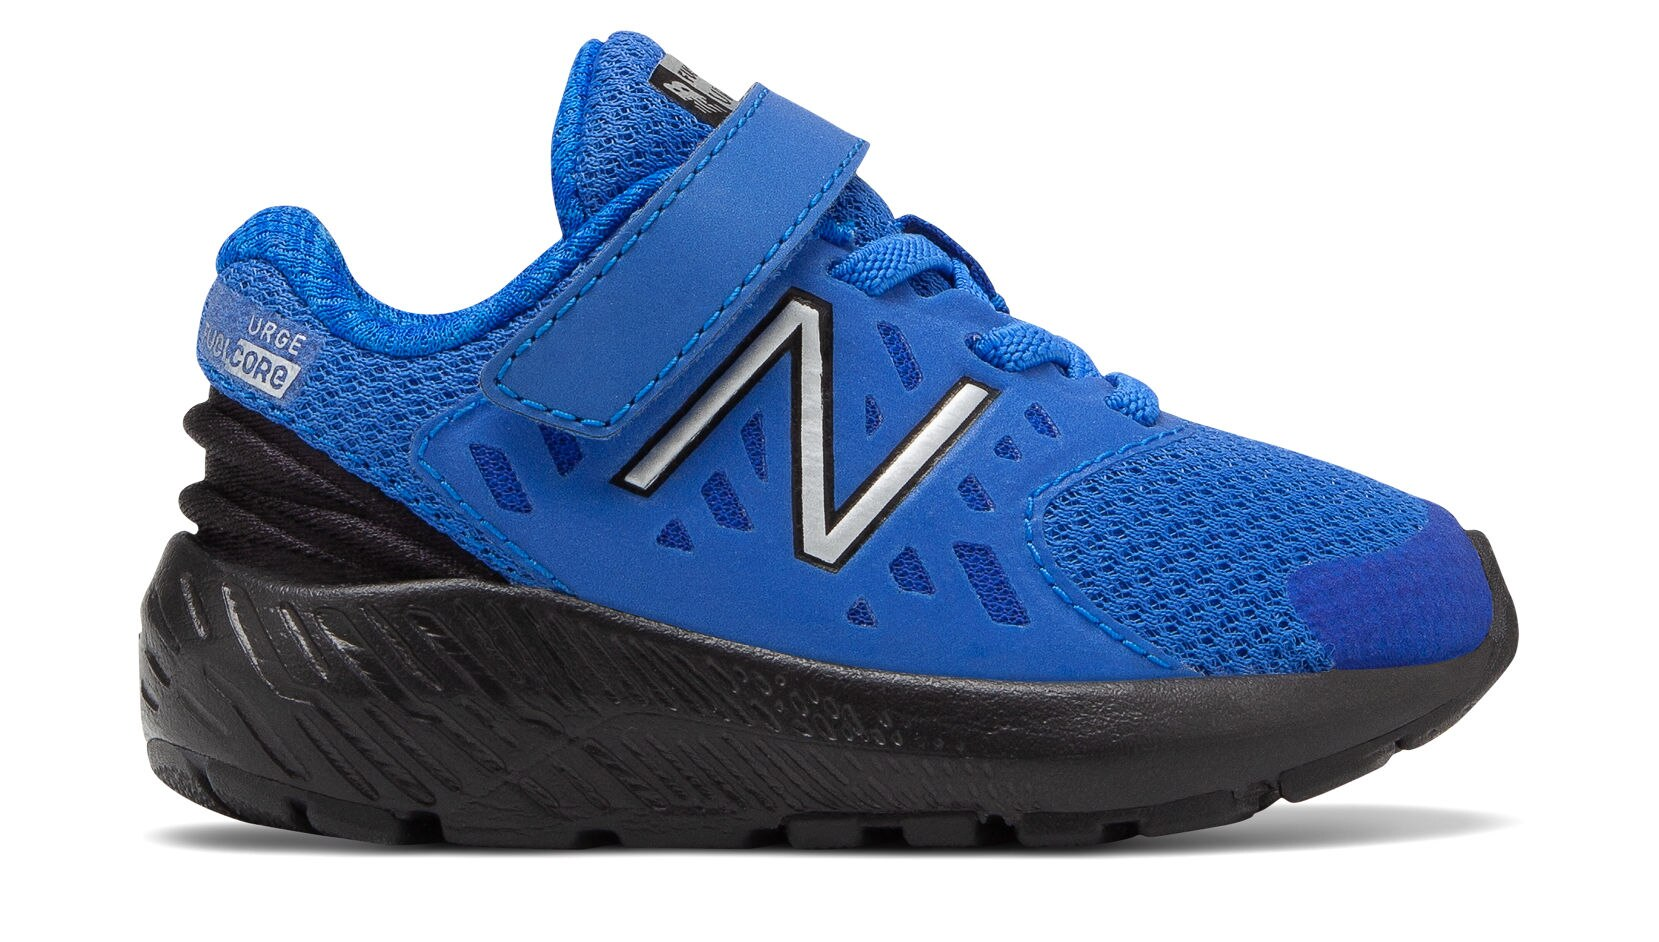 FuelCore Urge Velcro - Cobalt / Black by New Balance - Ponseti's Shoes